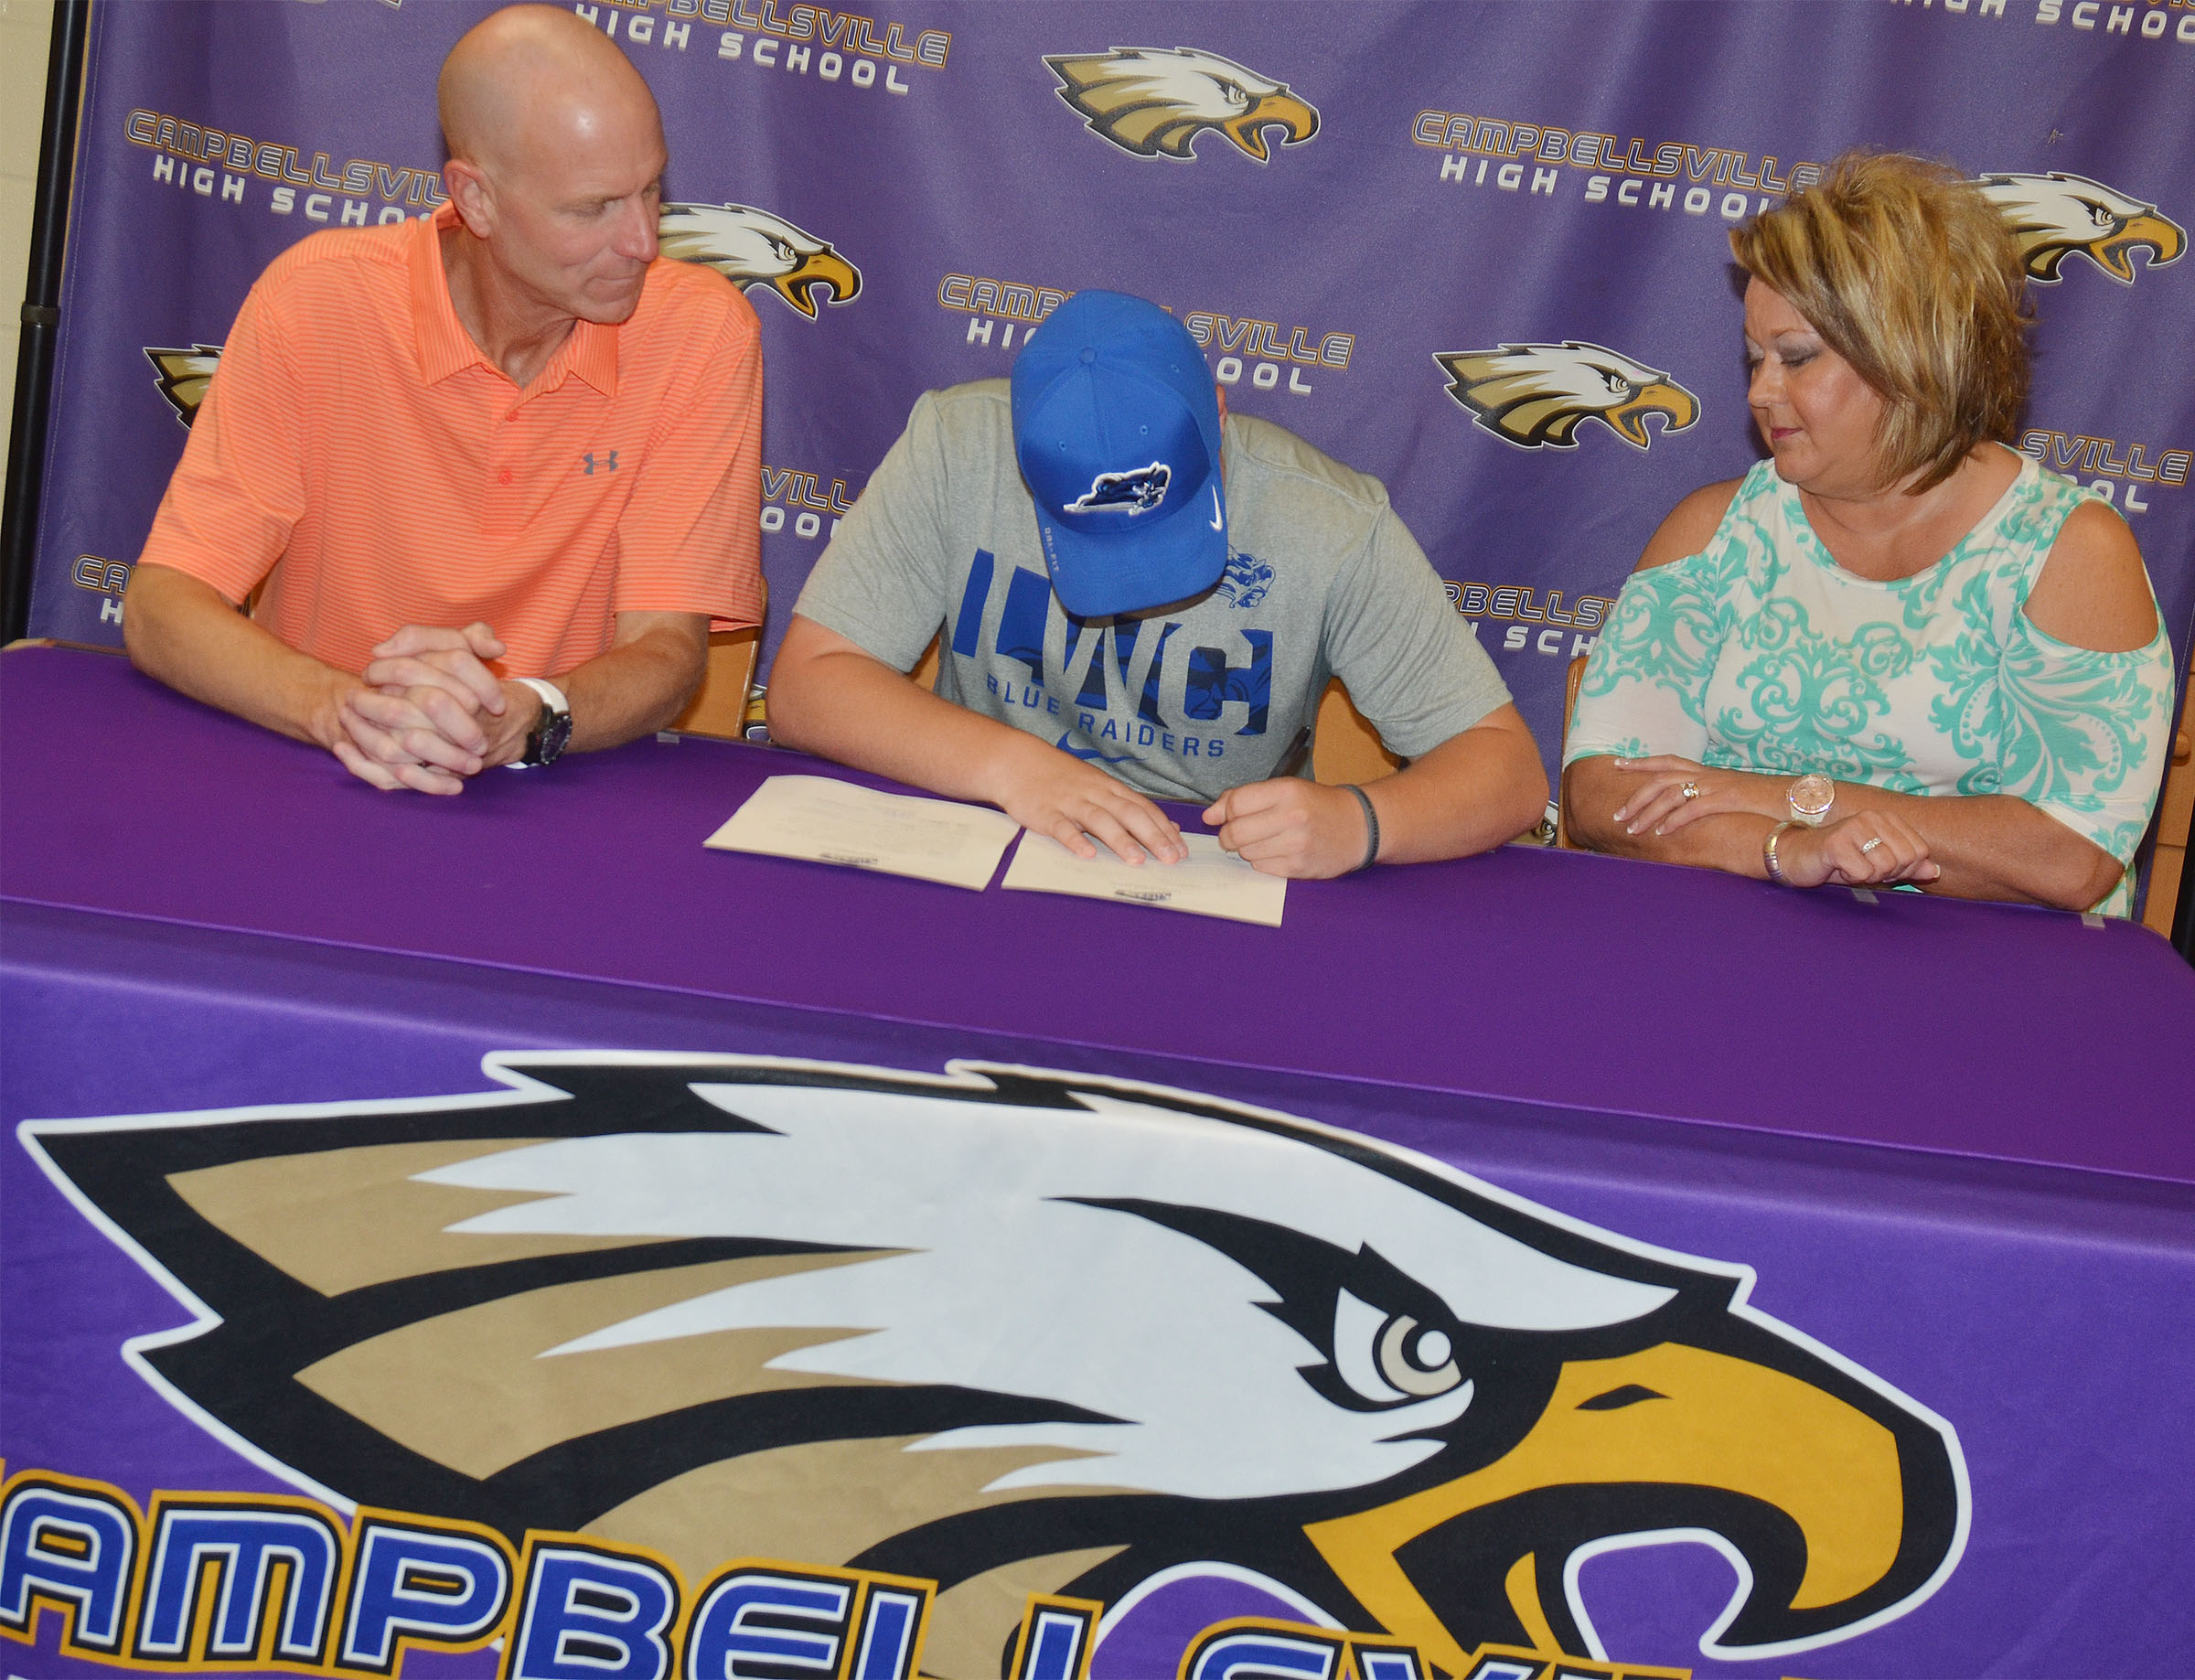 Campbellsville High School senior Noah Wagers will continue his academic and golf career this fall at Lindsey Wilson College. Wagers recently signed his letter of intent in a special ceremony with family, including his parents Steve and Kim, friends, teammates and coaches.